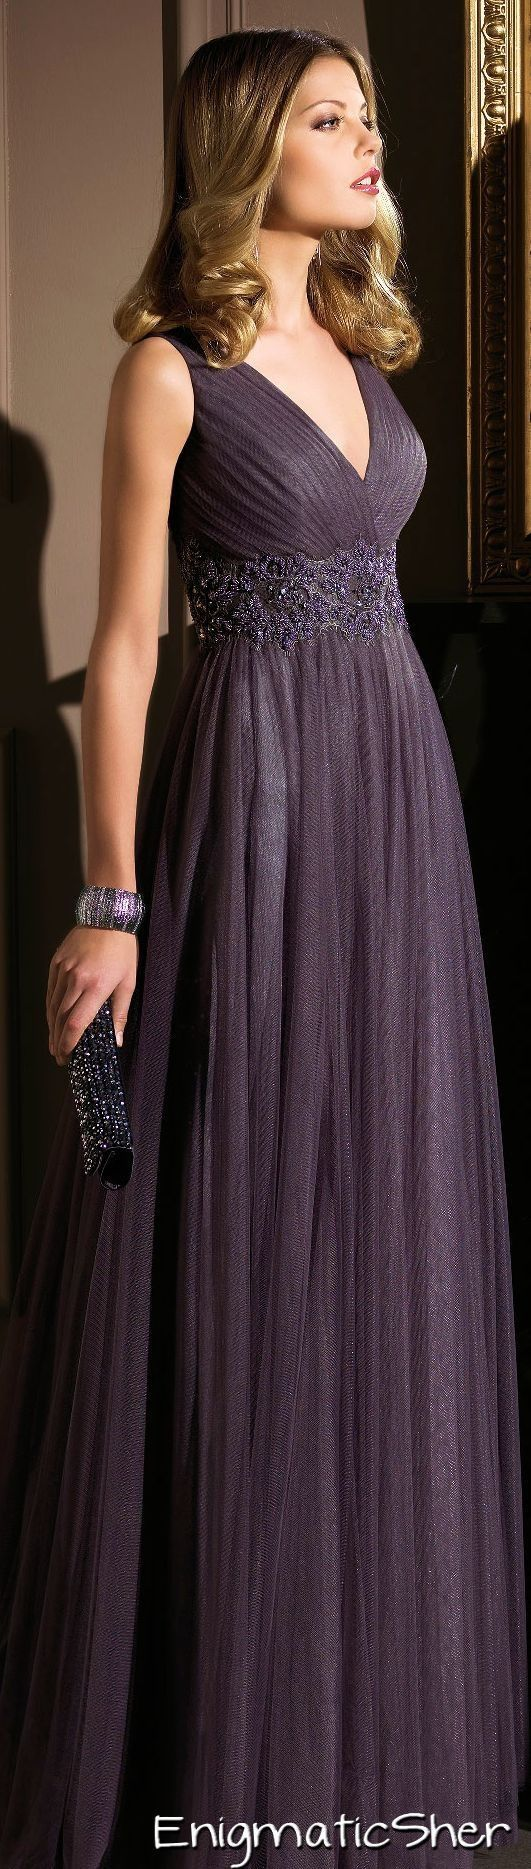 Aire Barcelona Cocktail 2015 #promdress | ~homecoming & prom ...